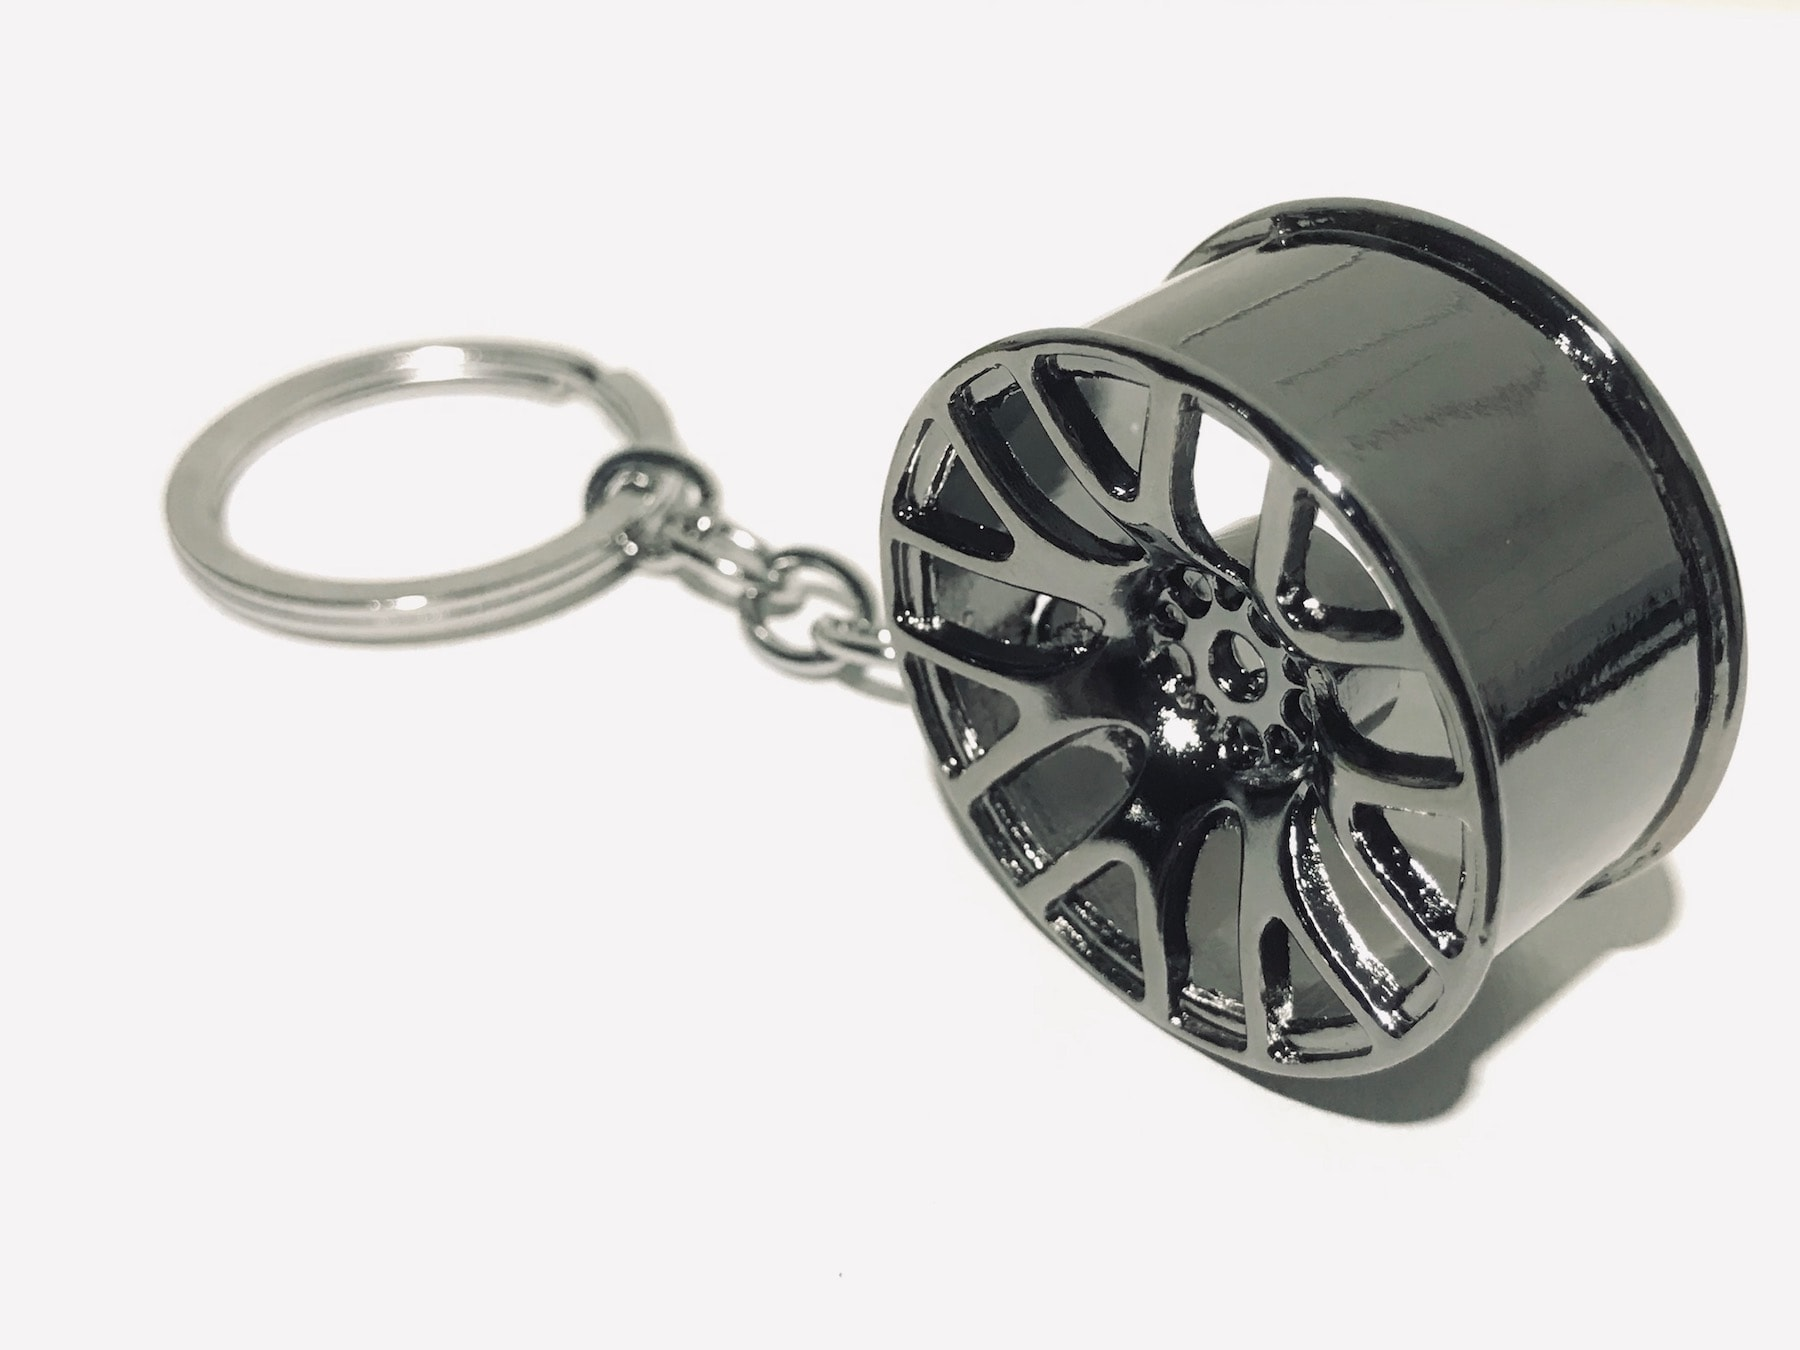 Car Alloy Wheel Grey Silver Anthracite Keyring Cool Key Fob Realistic Look & Feel Gift Birthday Xmas